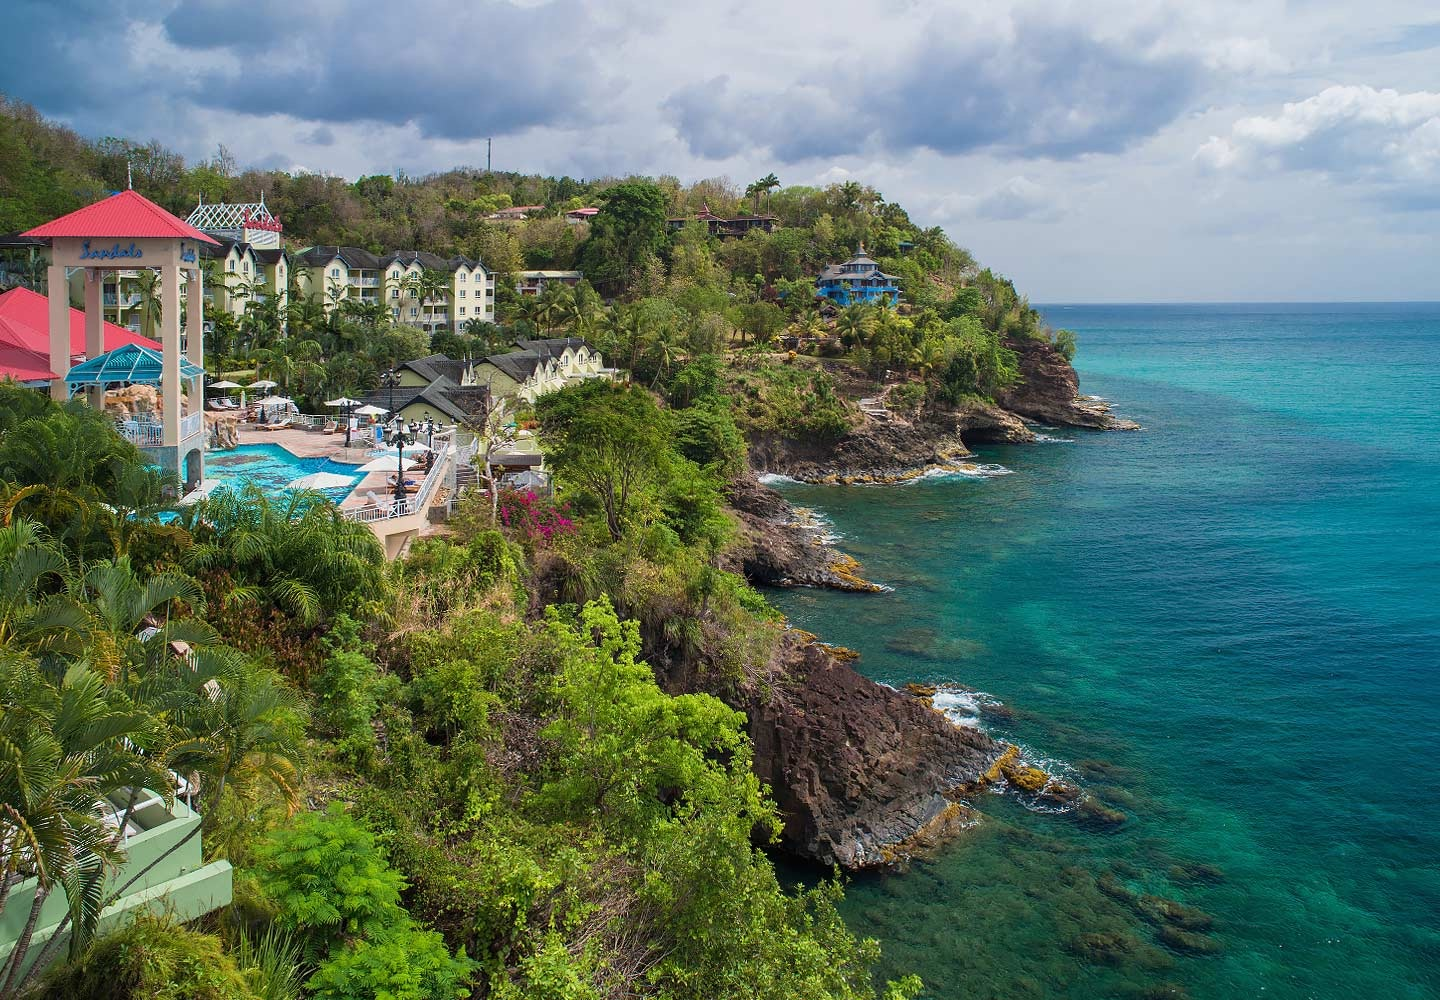 Sunset Bluff Village offers great views from its cliffside location.